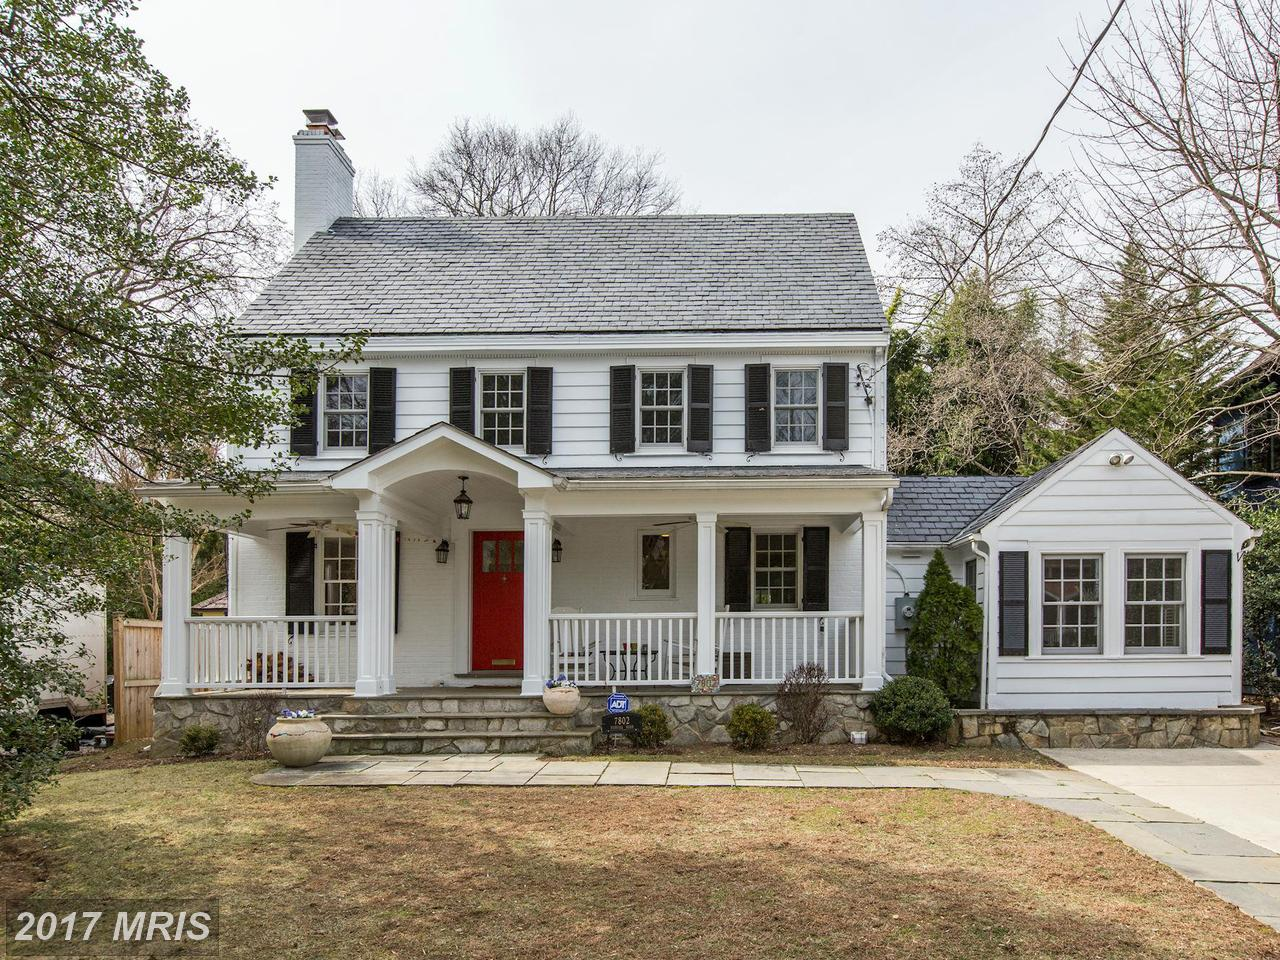 Single Family Home for Sale at Colonial, Detached - BETHESDA, MD 7802 FAIRFAX RD Bethesda, Maryland,20814 United States